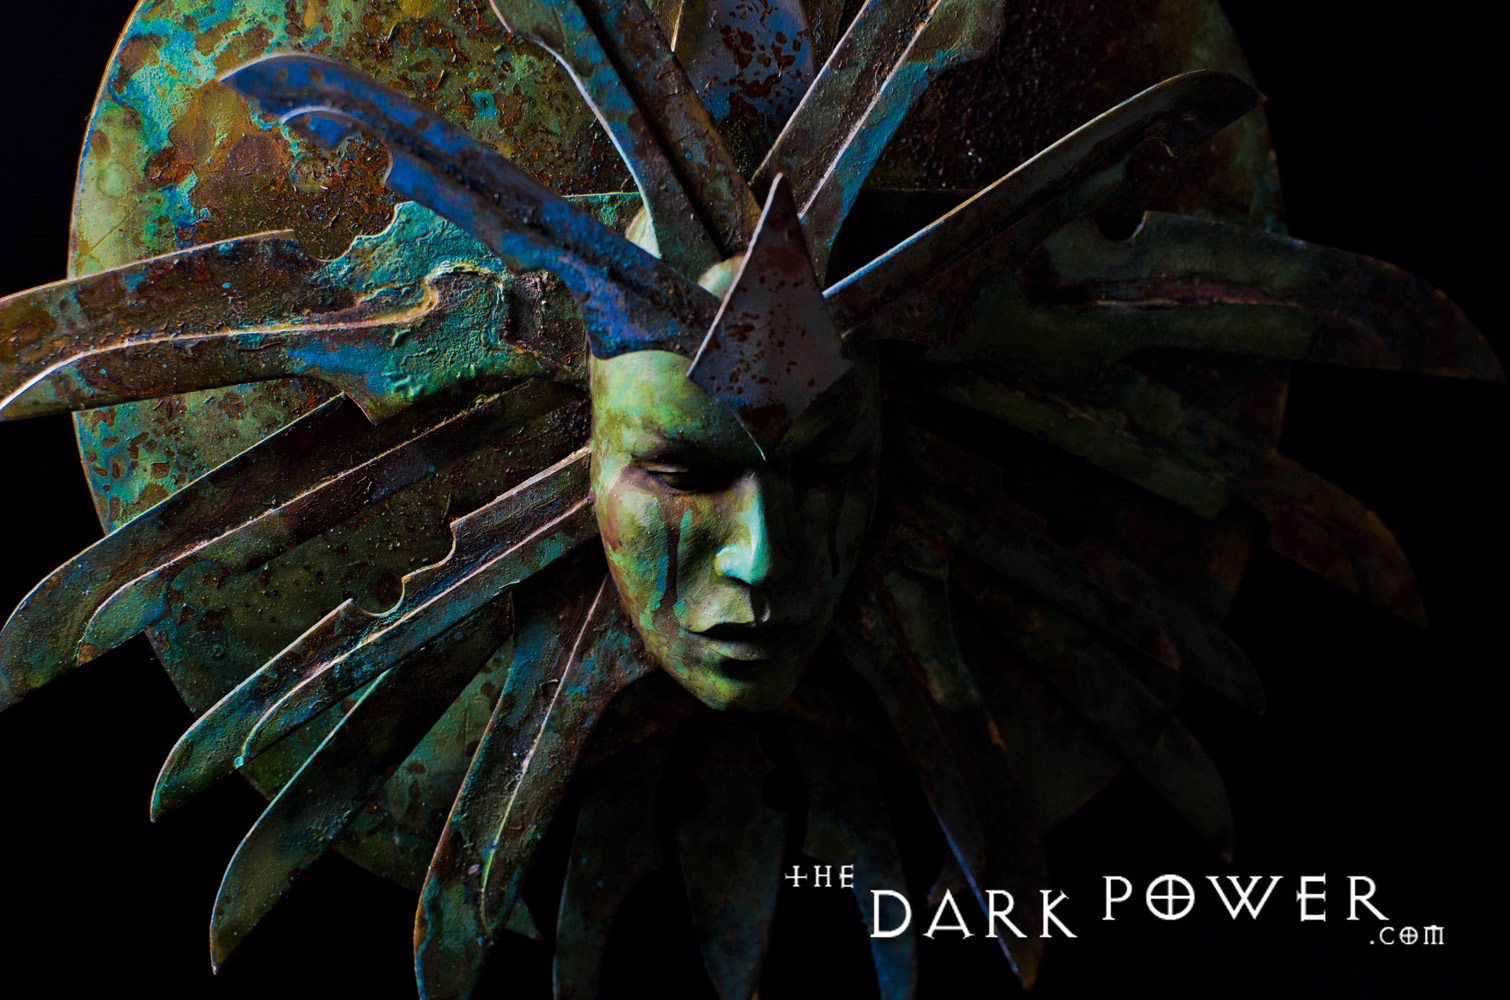 "the-dark-power ""The Lady of Pain"", dettaglio 1 - by The Dark Power (Joe) thedarkpower.com (2018-11) © dell'autore, tutti i diritti riservati"